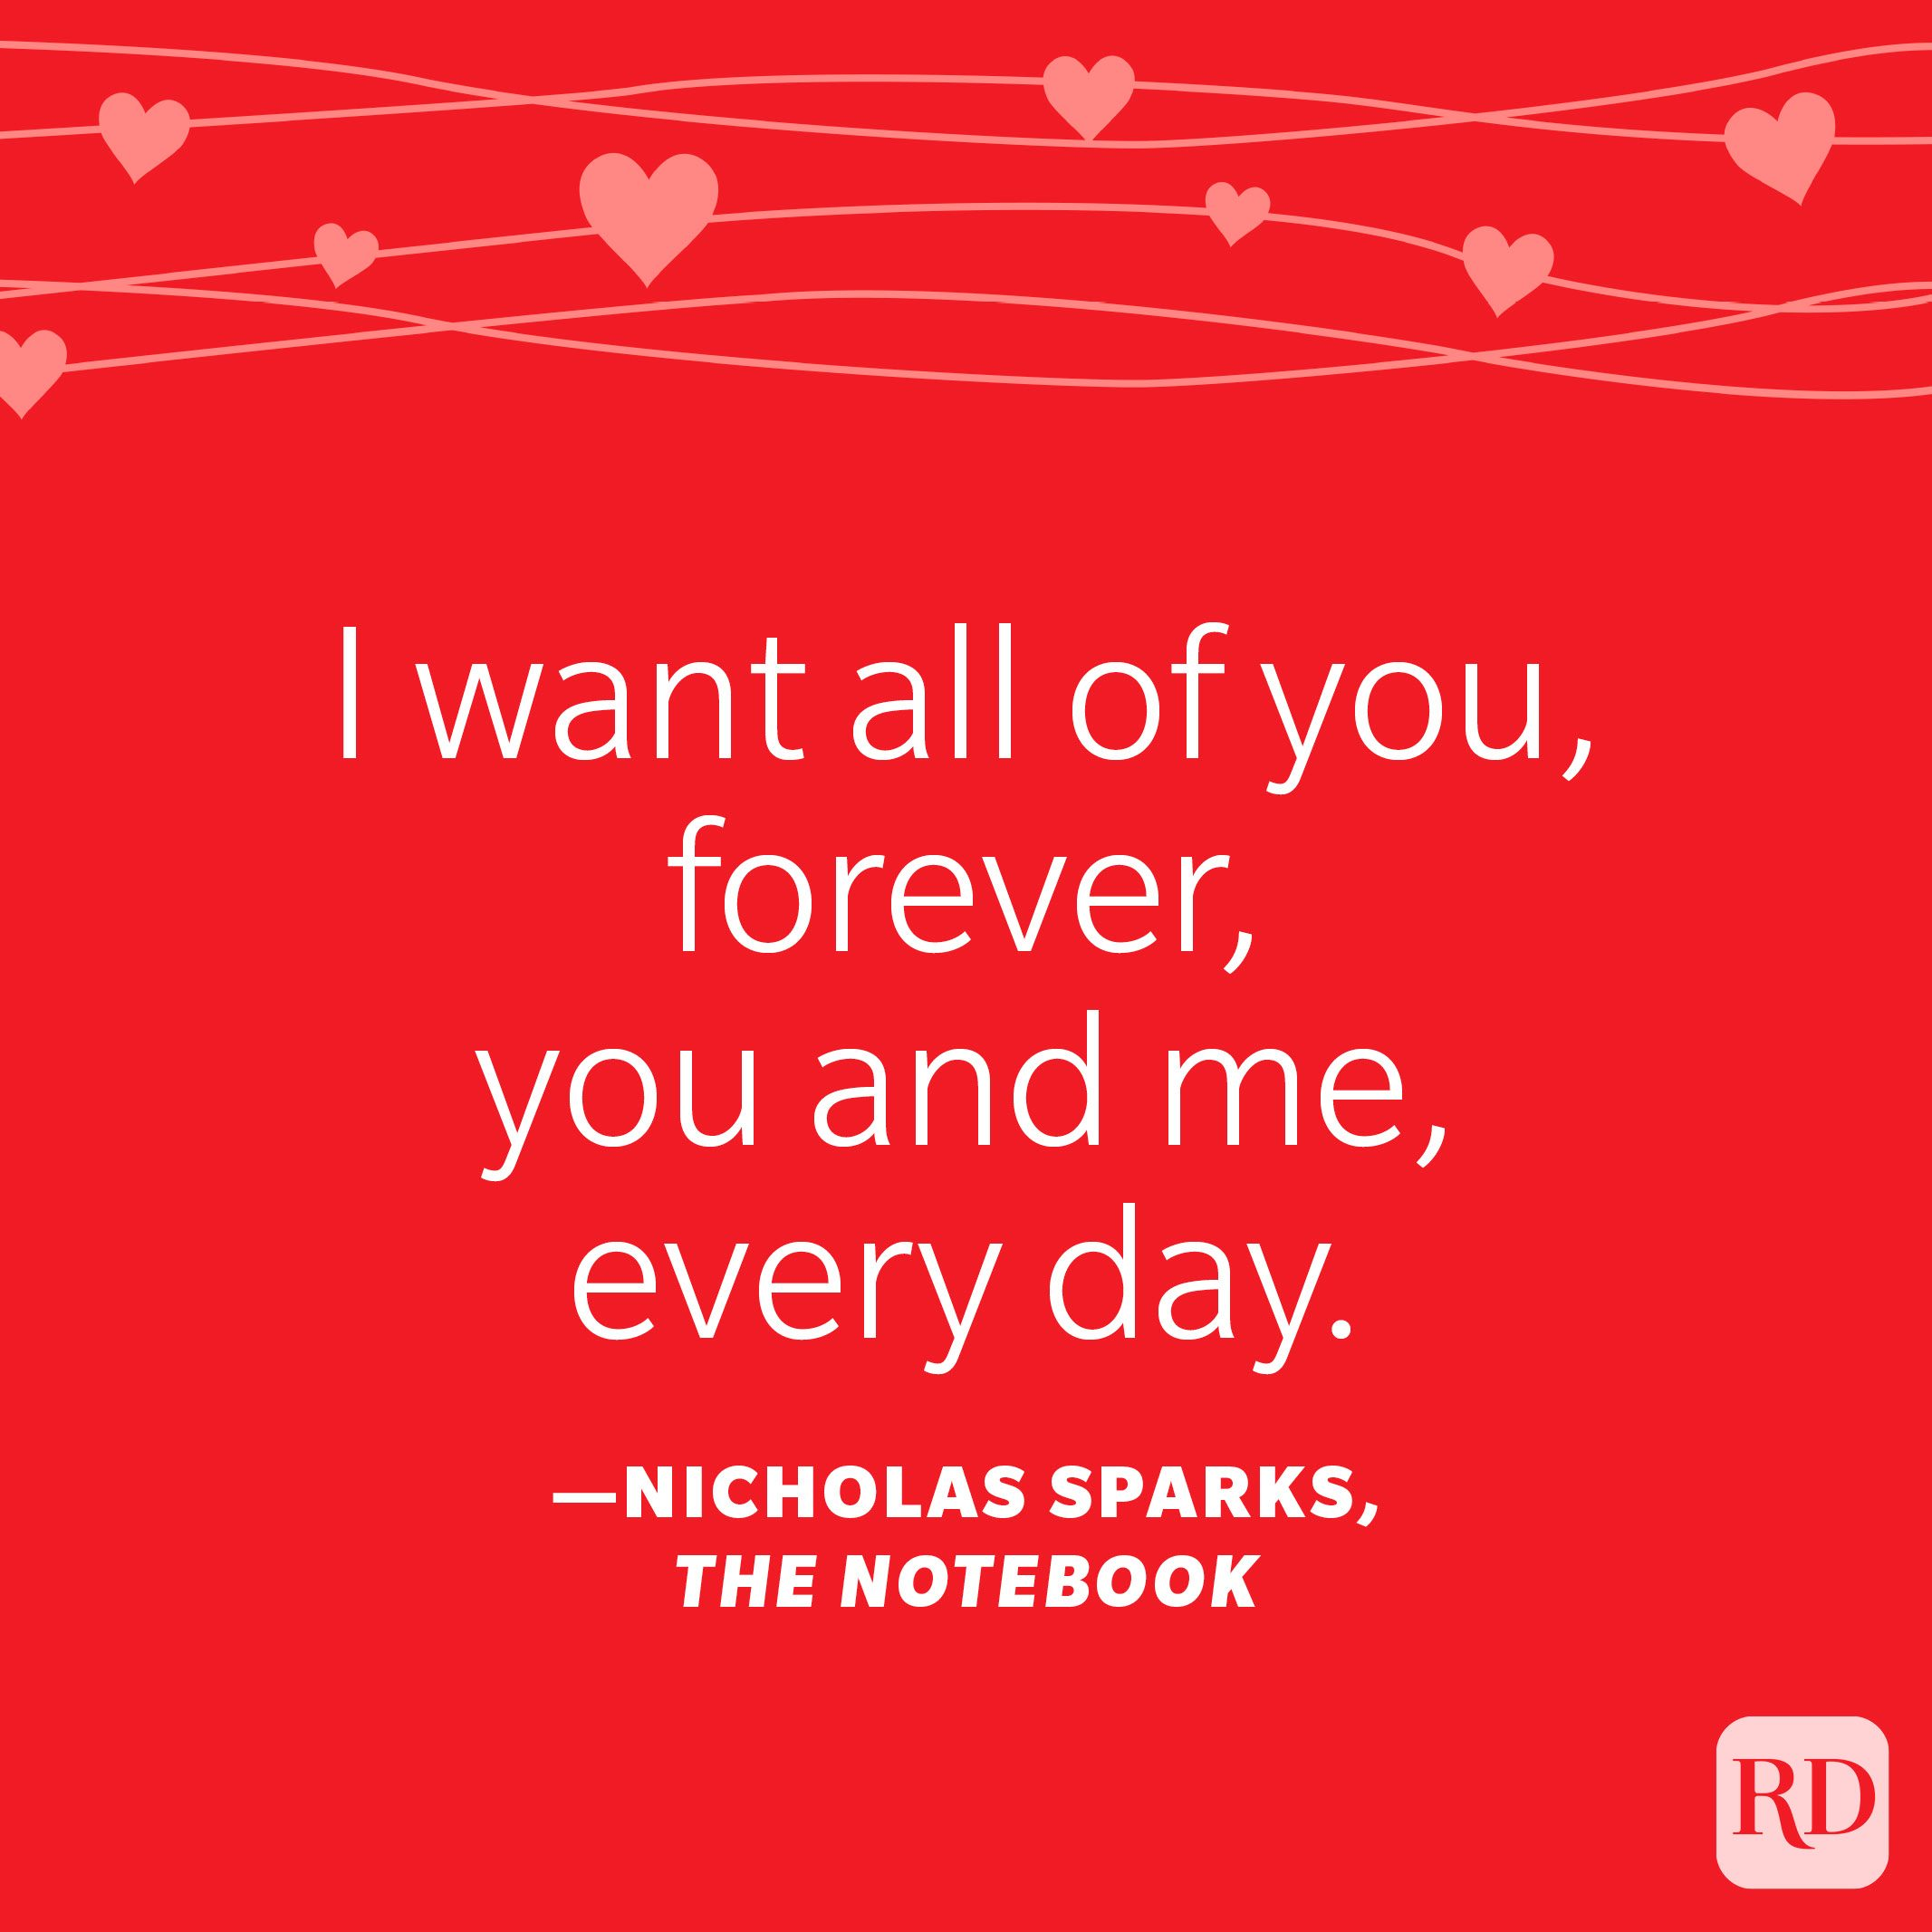 """""""I want all of you, forever, you and me, every day."""" —Nicholas Sparks, The Notebook"""